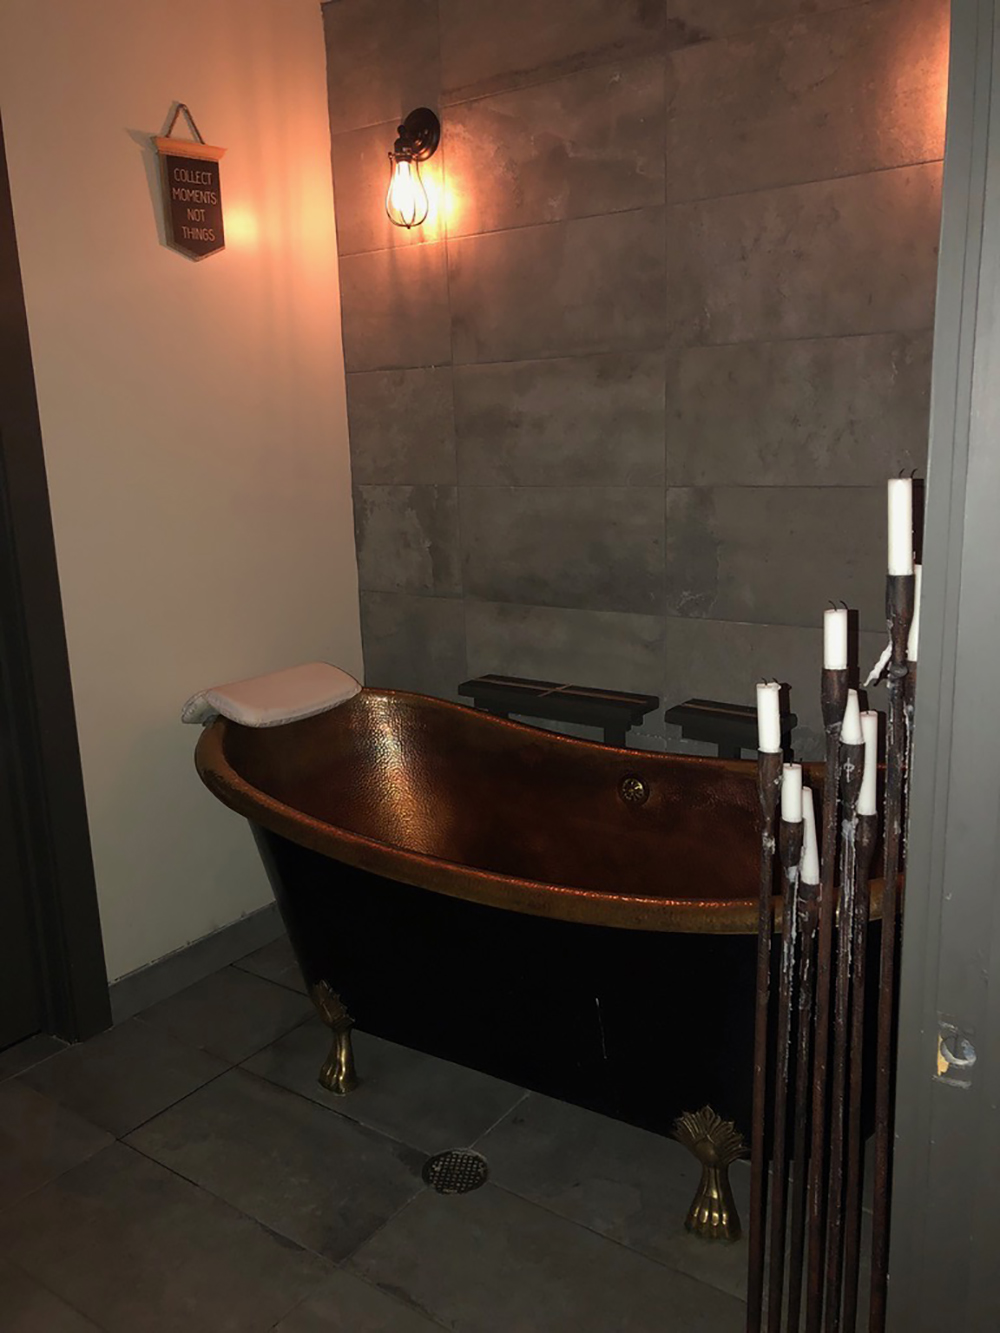 Guests can enjoy an array of soak baths in the copper tub.